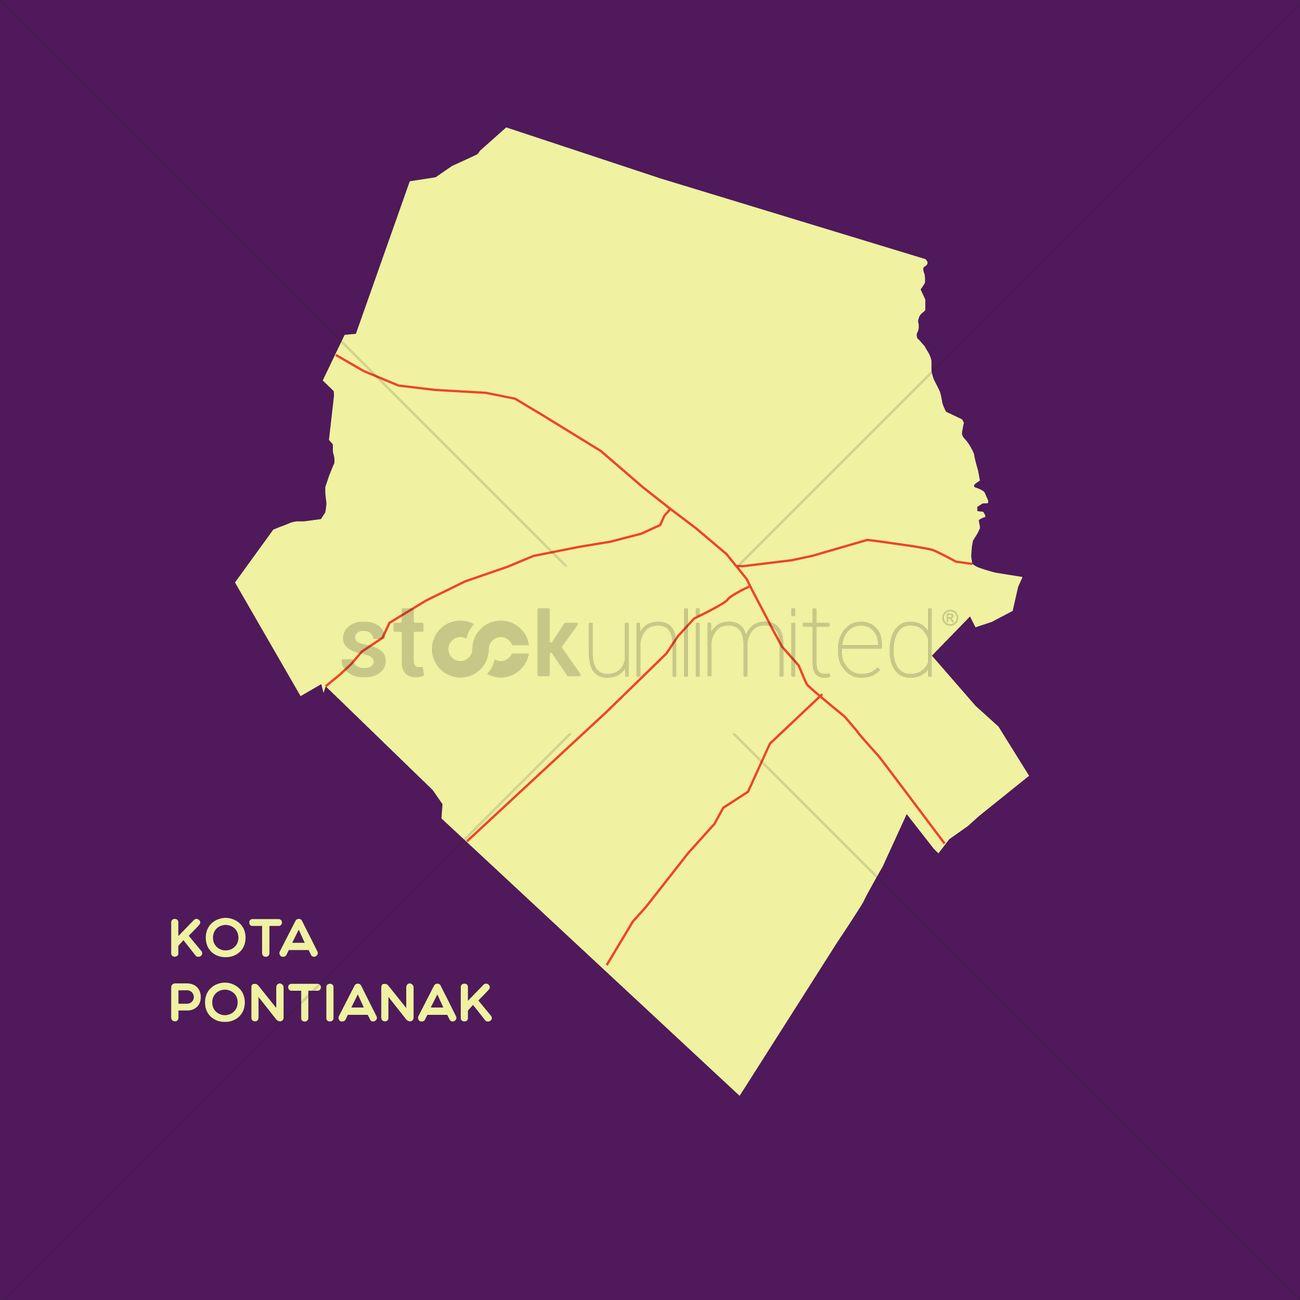 Map Of Kota Pontianak Vector Image 1480214 Stockunlimited